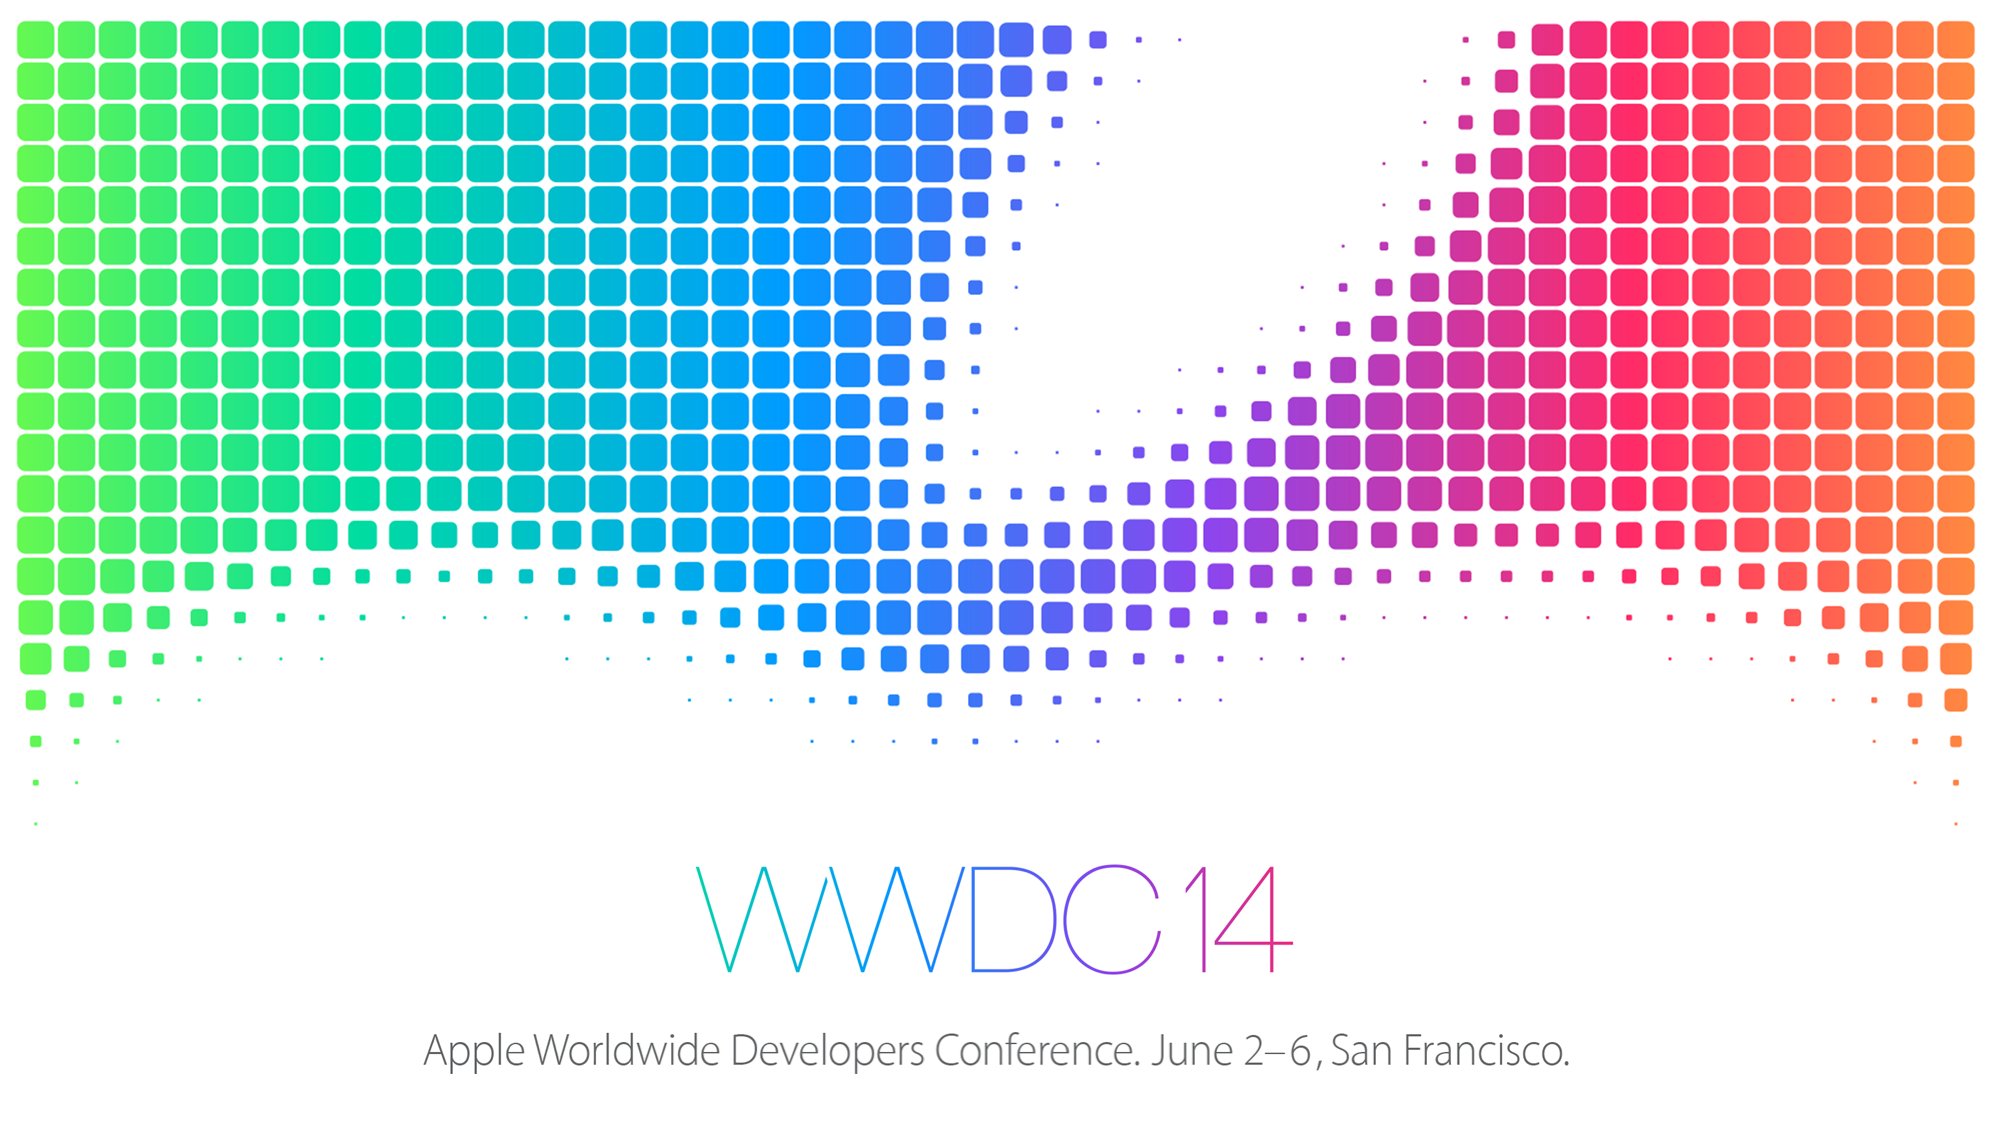 A logo for Apple's Worldwide Developers Conference.